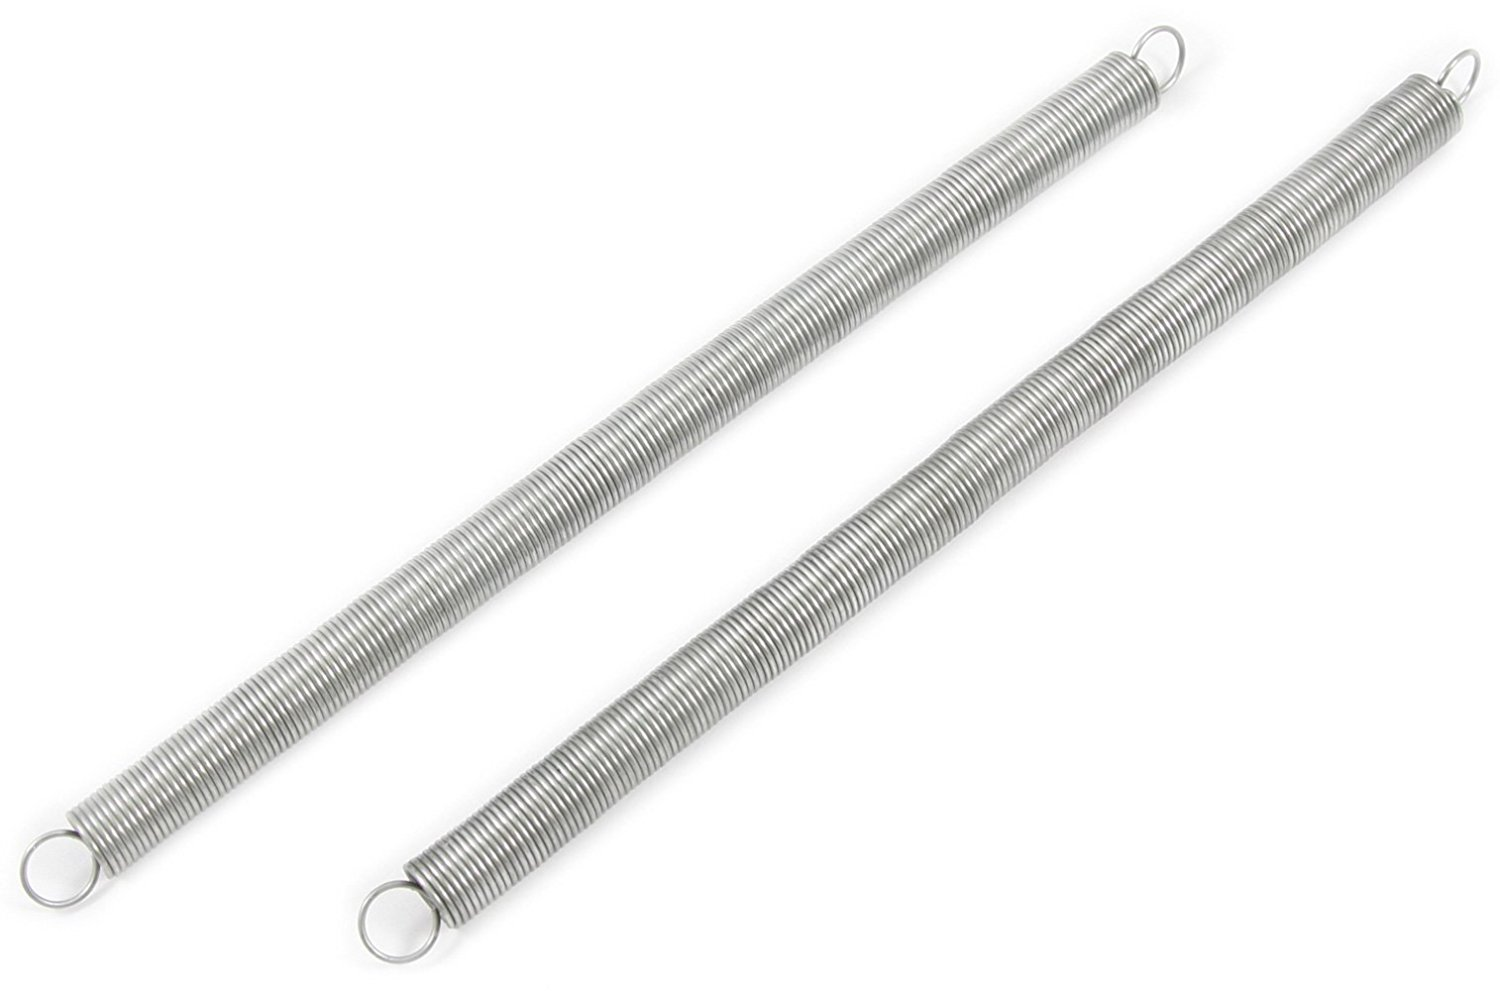 Forney 72562 Wire Spring Extension, 5/16-Inch-by-6-Inch-by-.028-Inch, 2-Pack